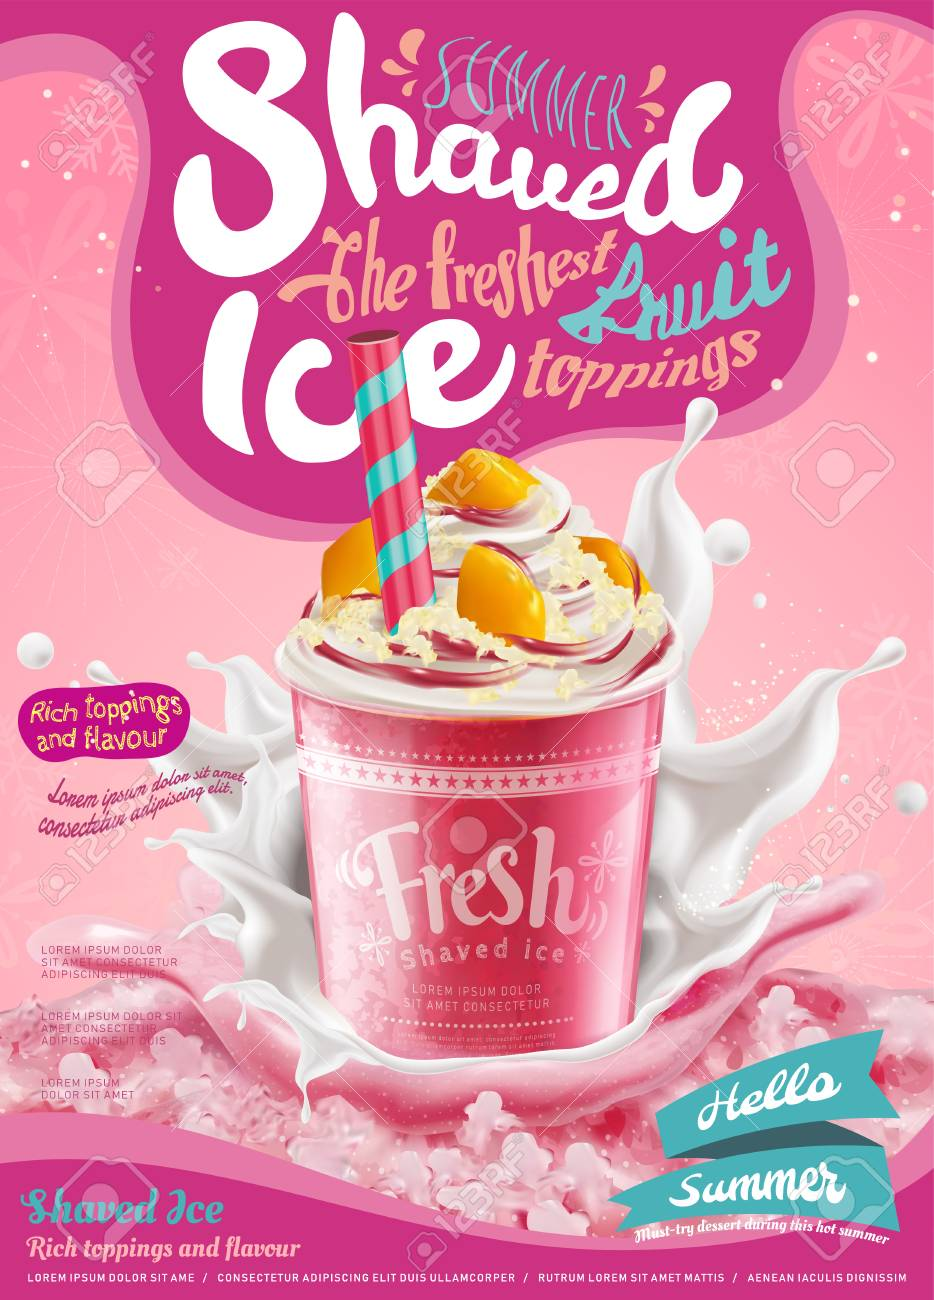 Strawberry ice shaved poster with splashing milk in 3d illustration, pink background with snowflakes - 103451997